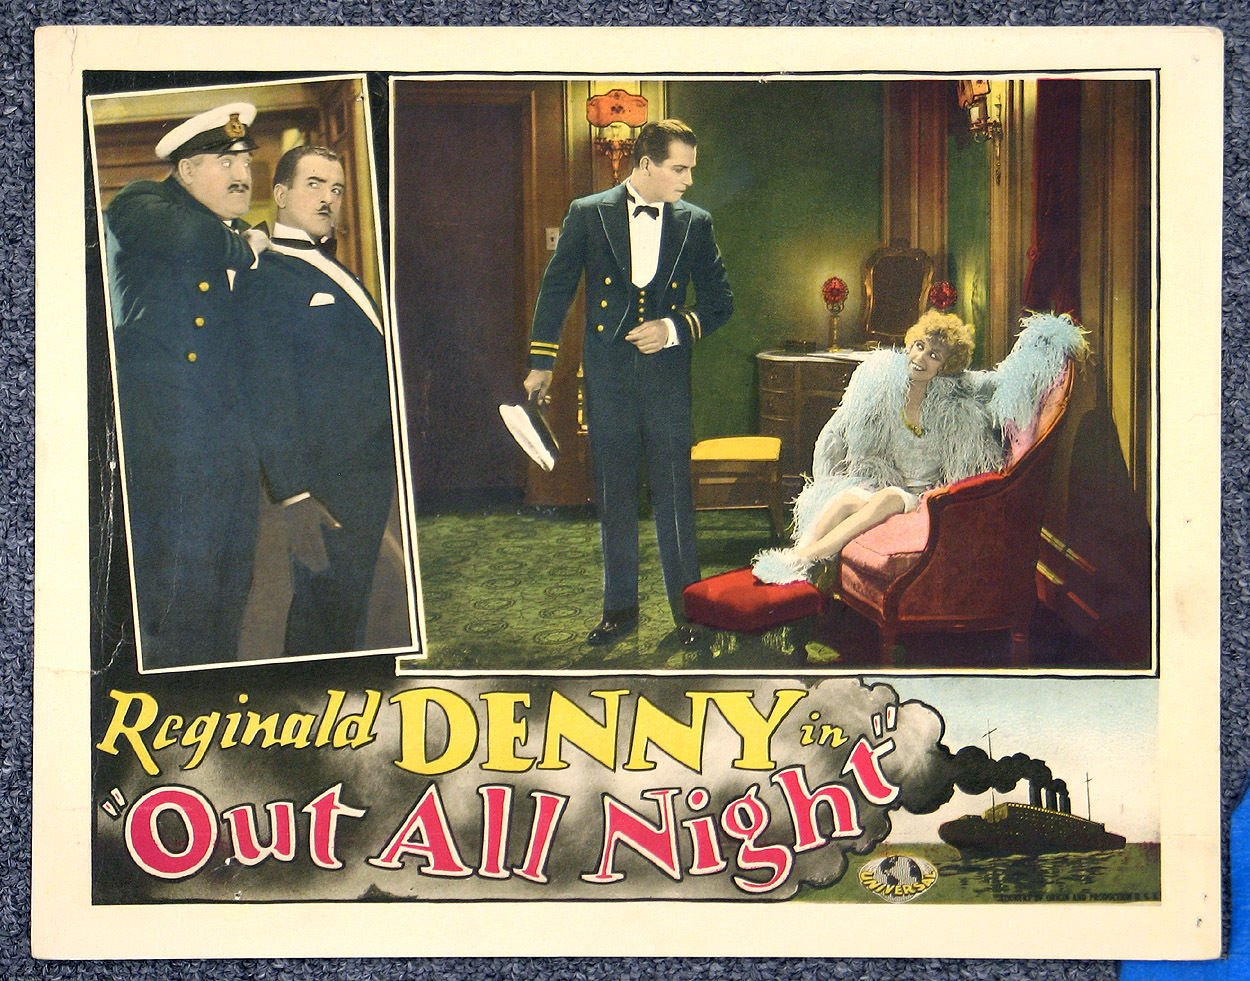 Alfred Allen, Reginald Denny, and Marian Nixon in Out All Night (1927)